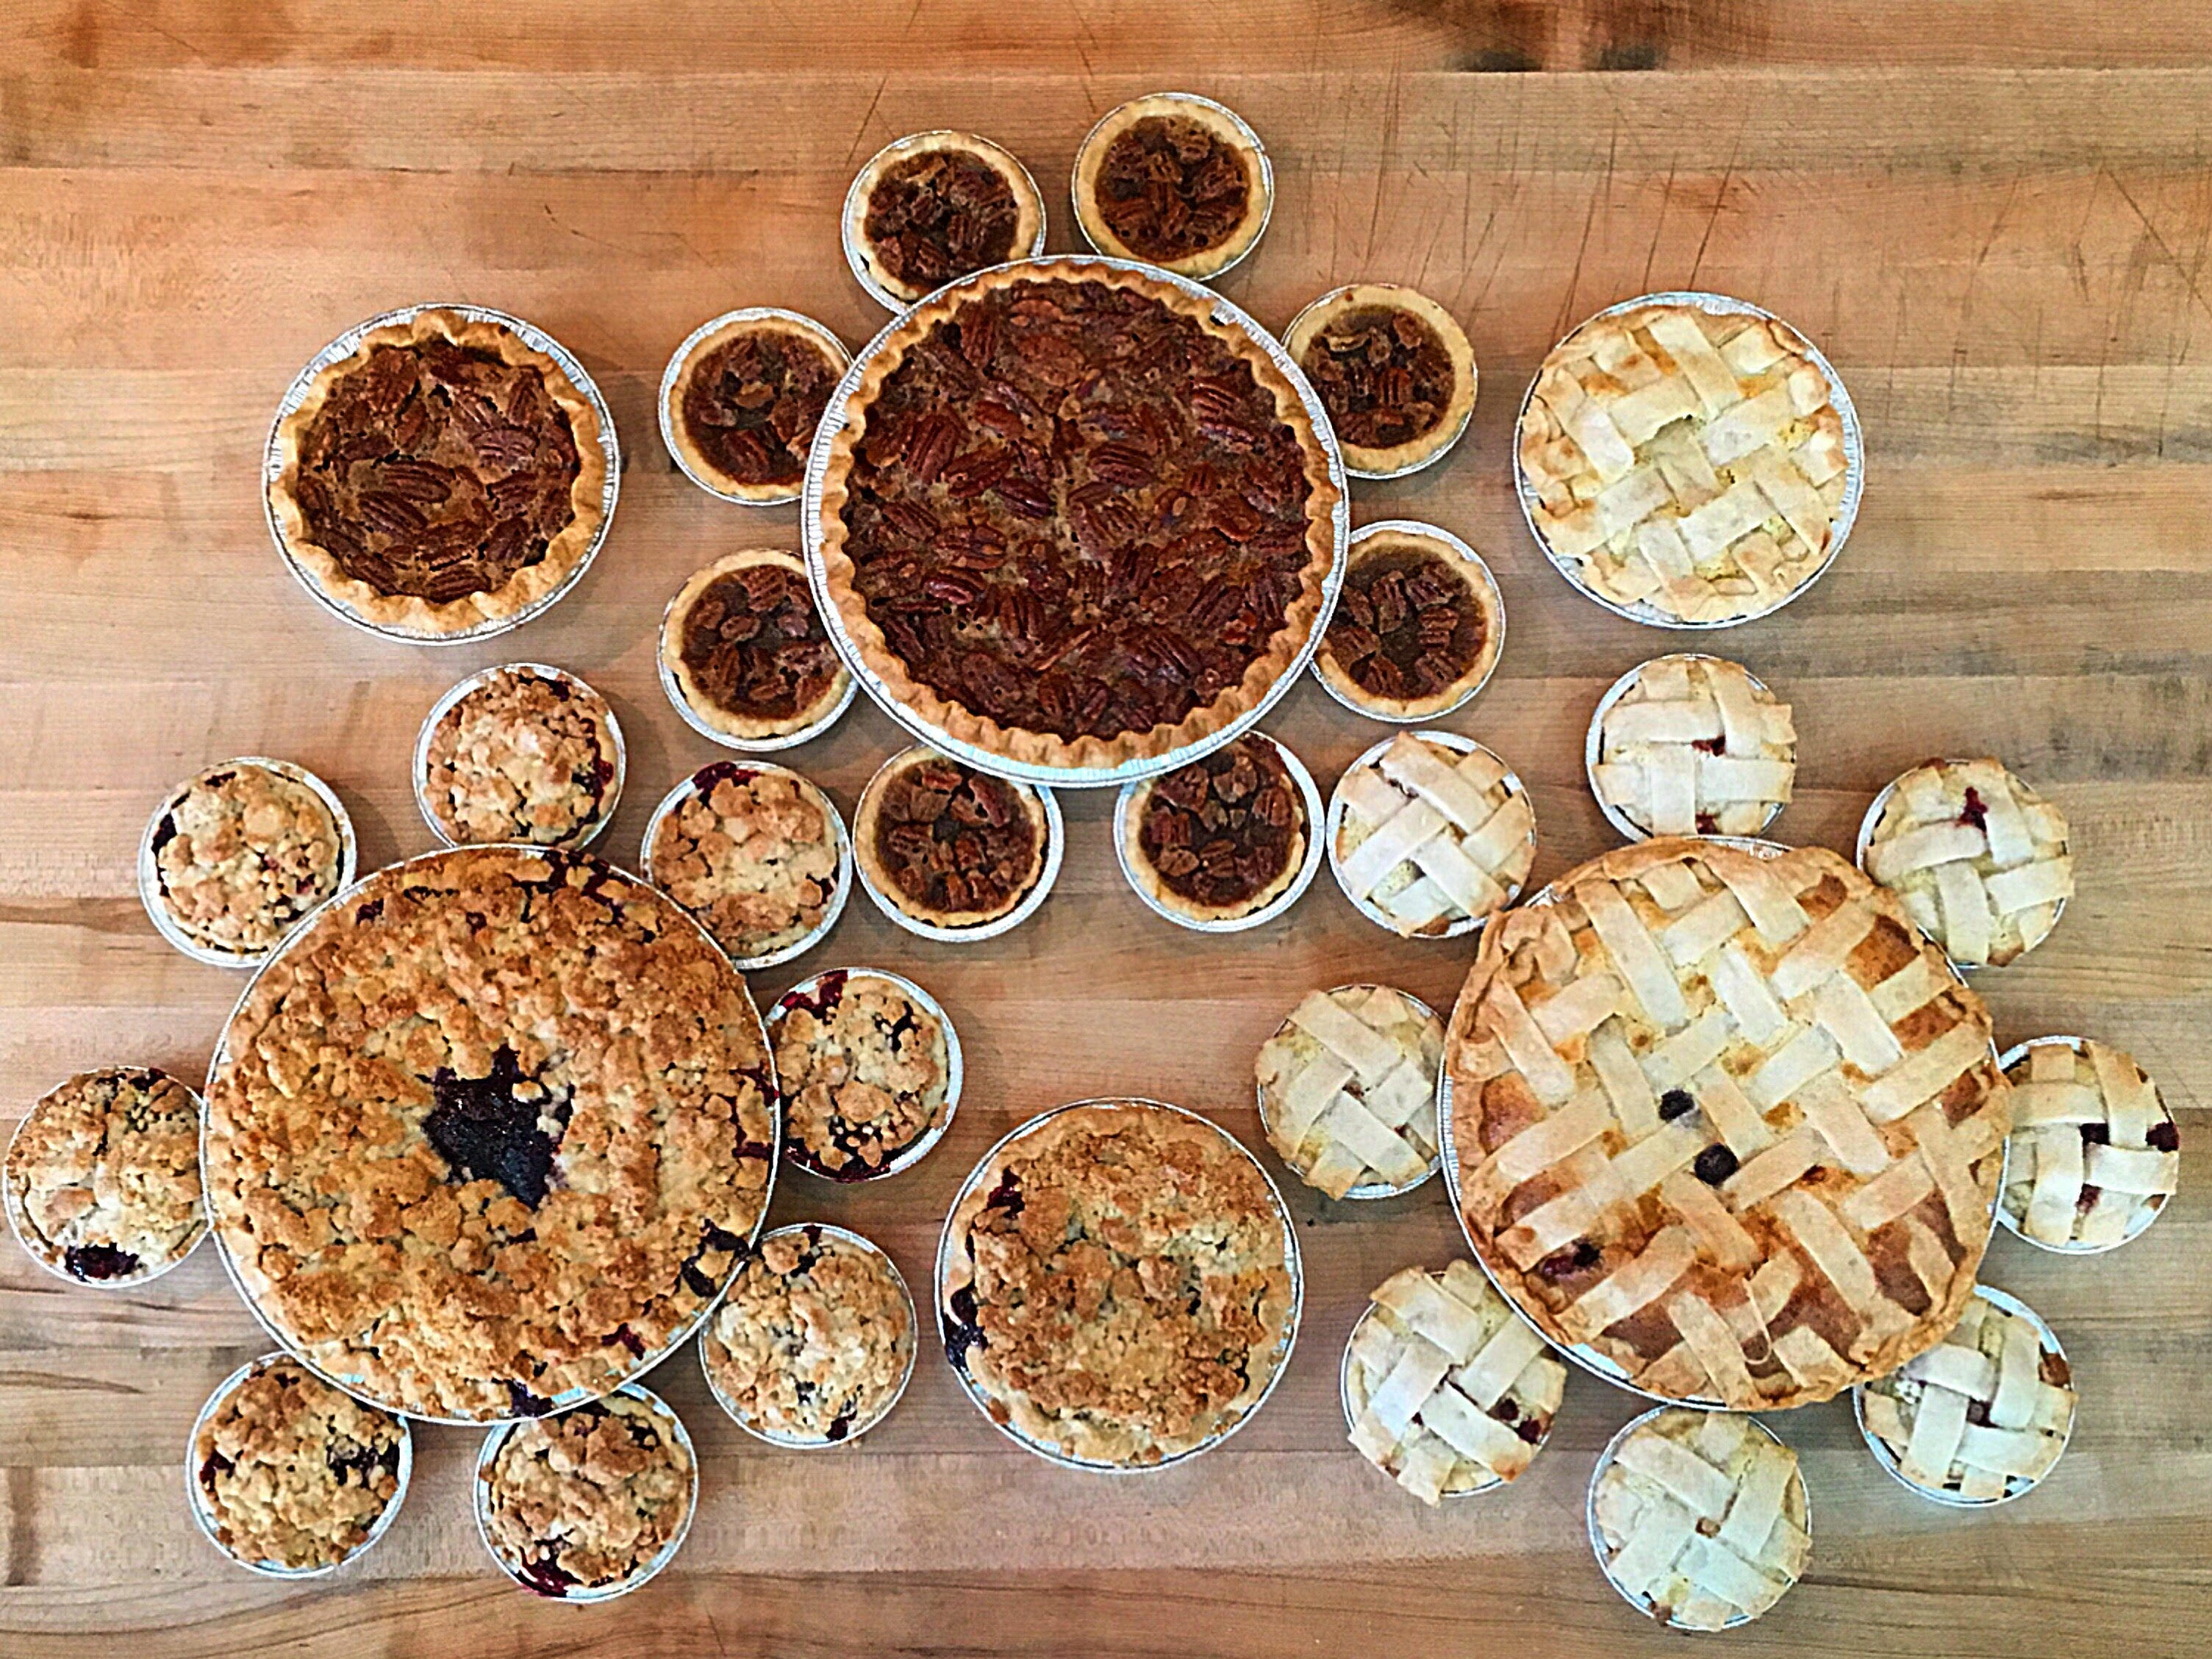 ONE MORE BITE BAKERY | The dizzying pie menu flaunts fruit, cream and sweet versions ($5-$6 per slice, $18-$22 per whole pie). Ponder lemon custard with blueberry, pear almond, chocolate pumpkin, banana foster, espresso and the Elvis (chocolate, peanut butter and banana). | DETAILS: 1166 S. Gilbert Road, Gilbert. 480-258-0020, onemorebitebakerygilbert.com.